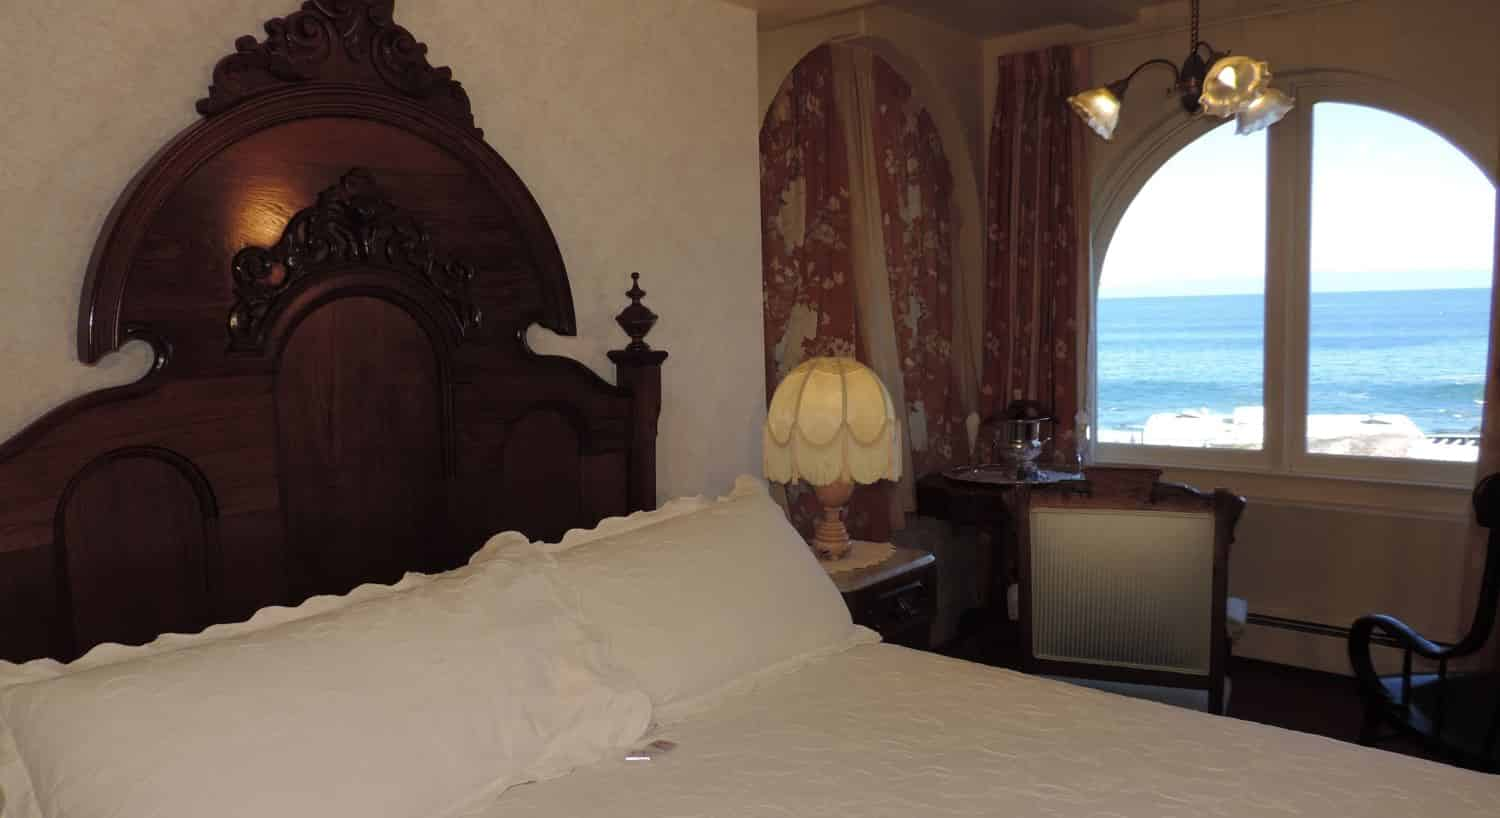 Victoriana guest room with beige walls, arched double window overlooking the ocean and elegantly carved headboard